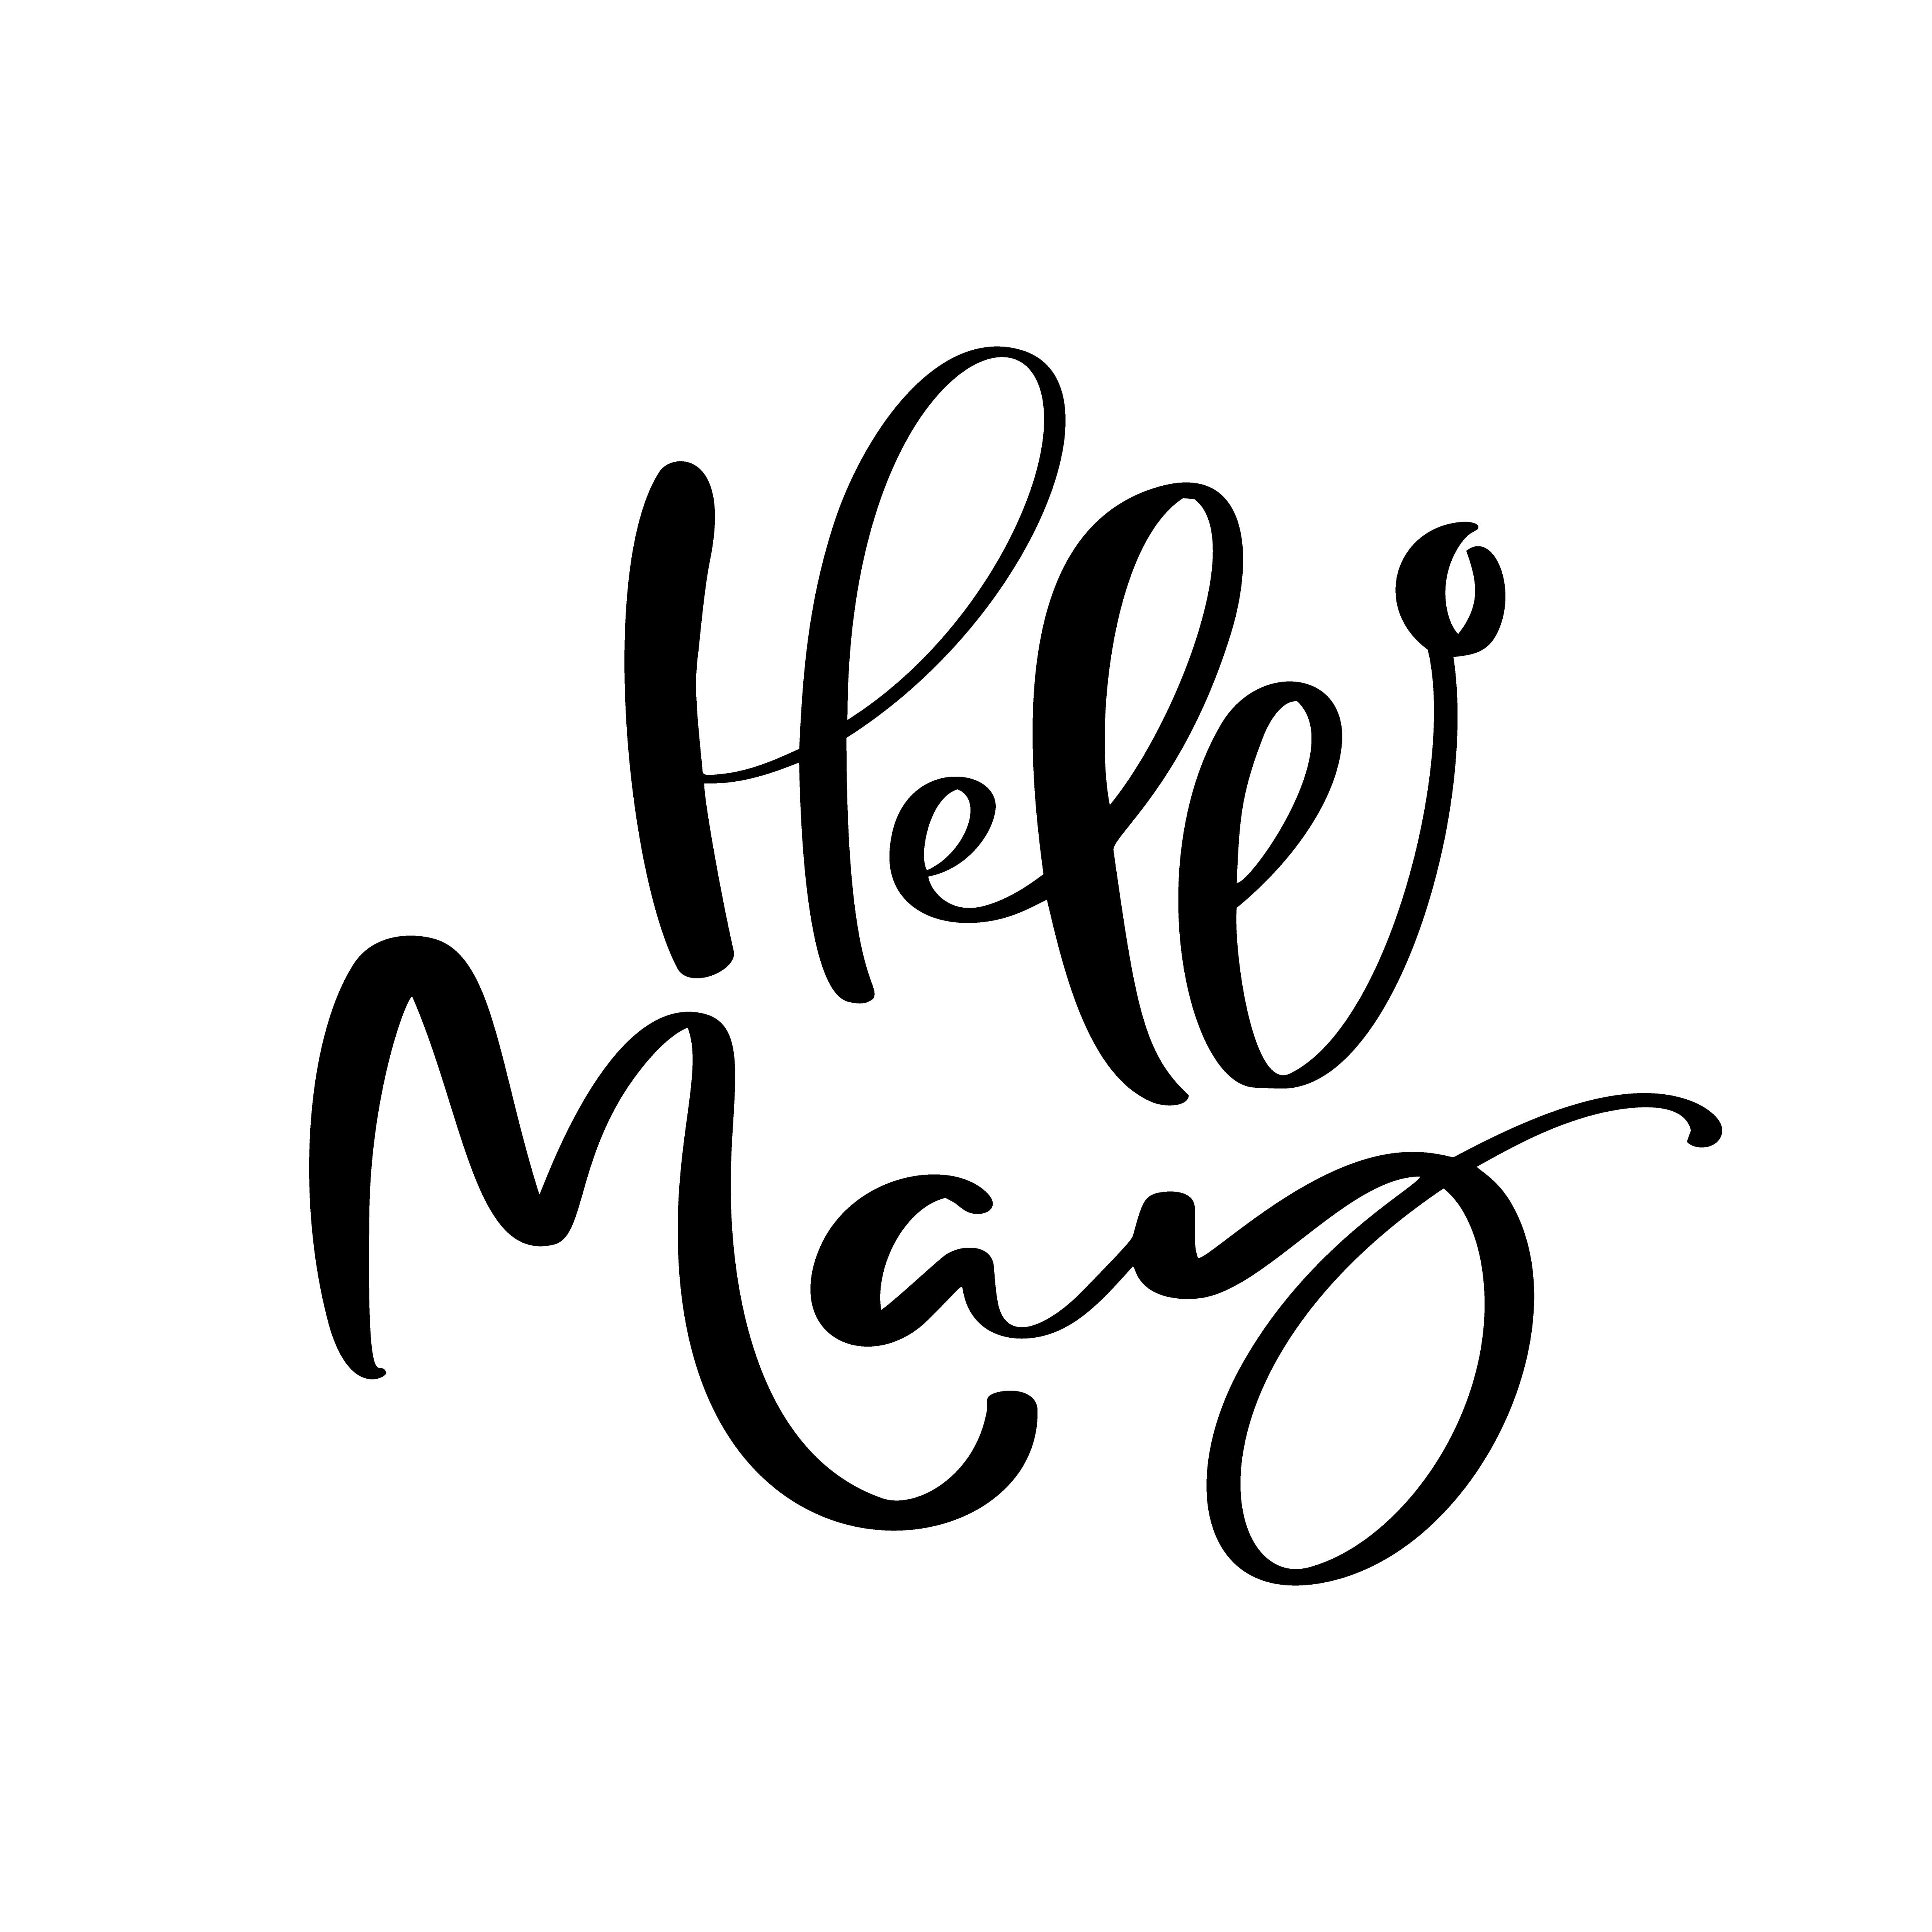 Hello May Hand Drawn Calligraphy Text And Brush Pen